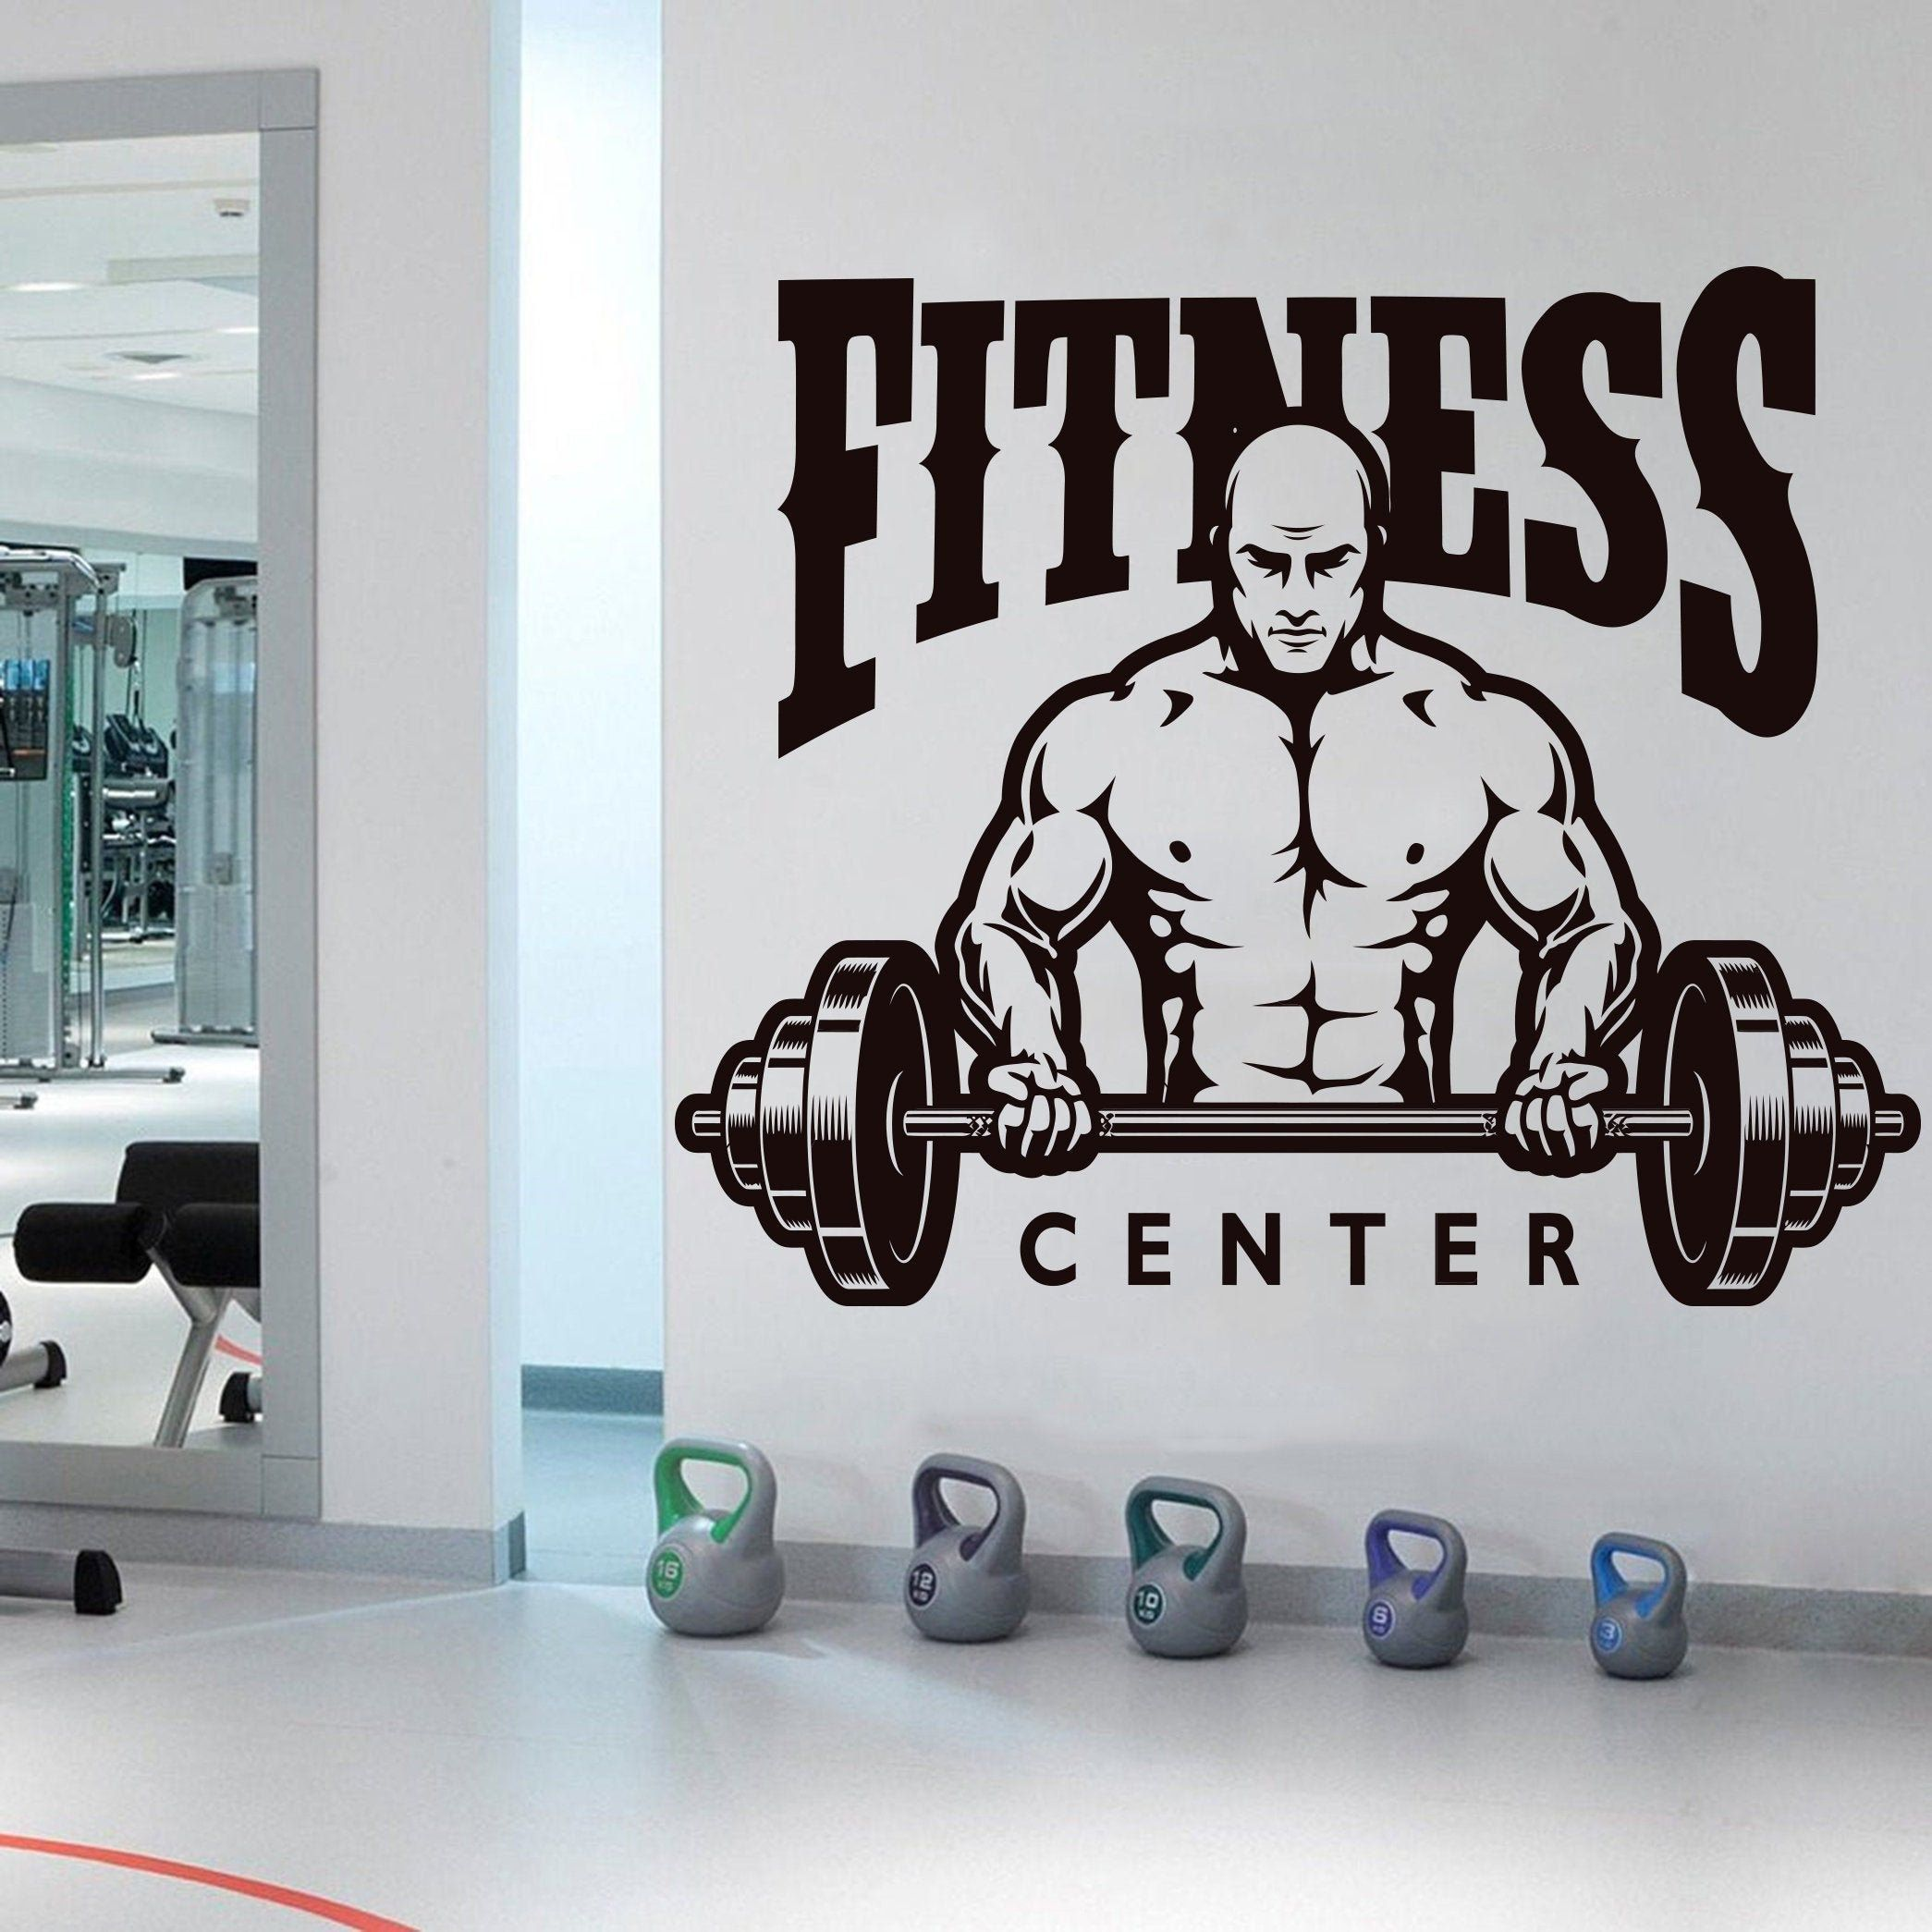 Fitness Center Wall Decals Gym Wall Decal Fitness Workout Gym Club Decor Mural Vinyl Gym Wall Stickers Gym Girl Motivation Crossfit 623es In 2021 Gym Wall Decal Gym Wall Stickers Wall Decals [ 2090 x 2090 Pixel ]